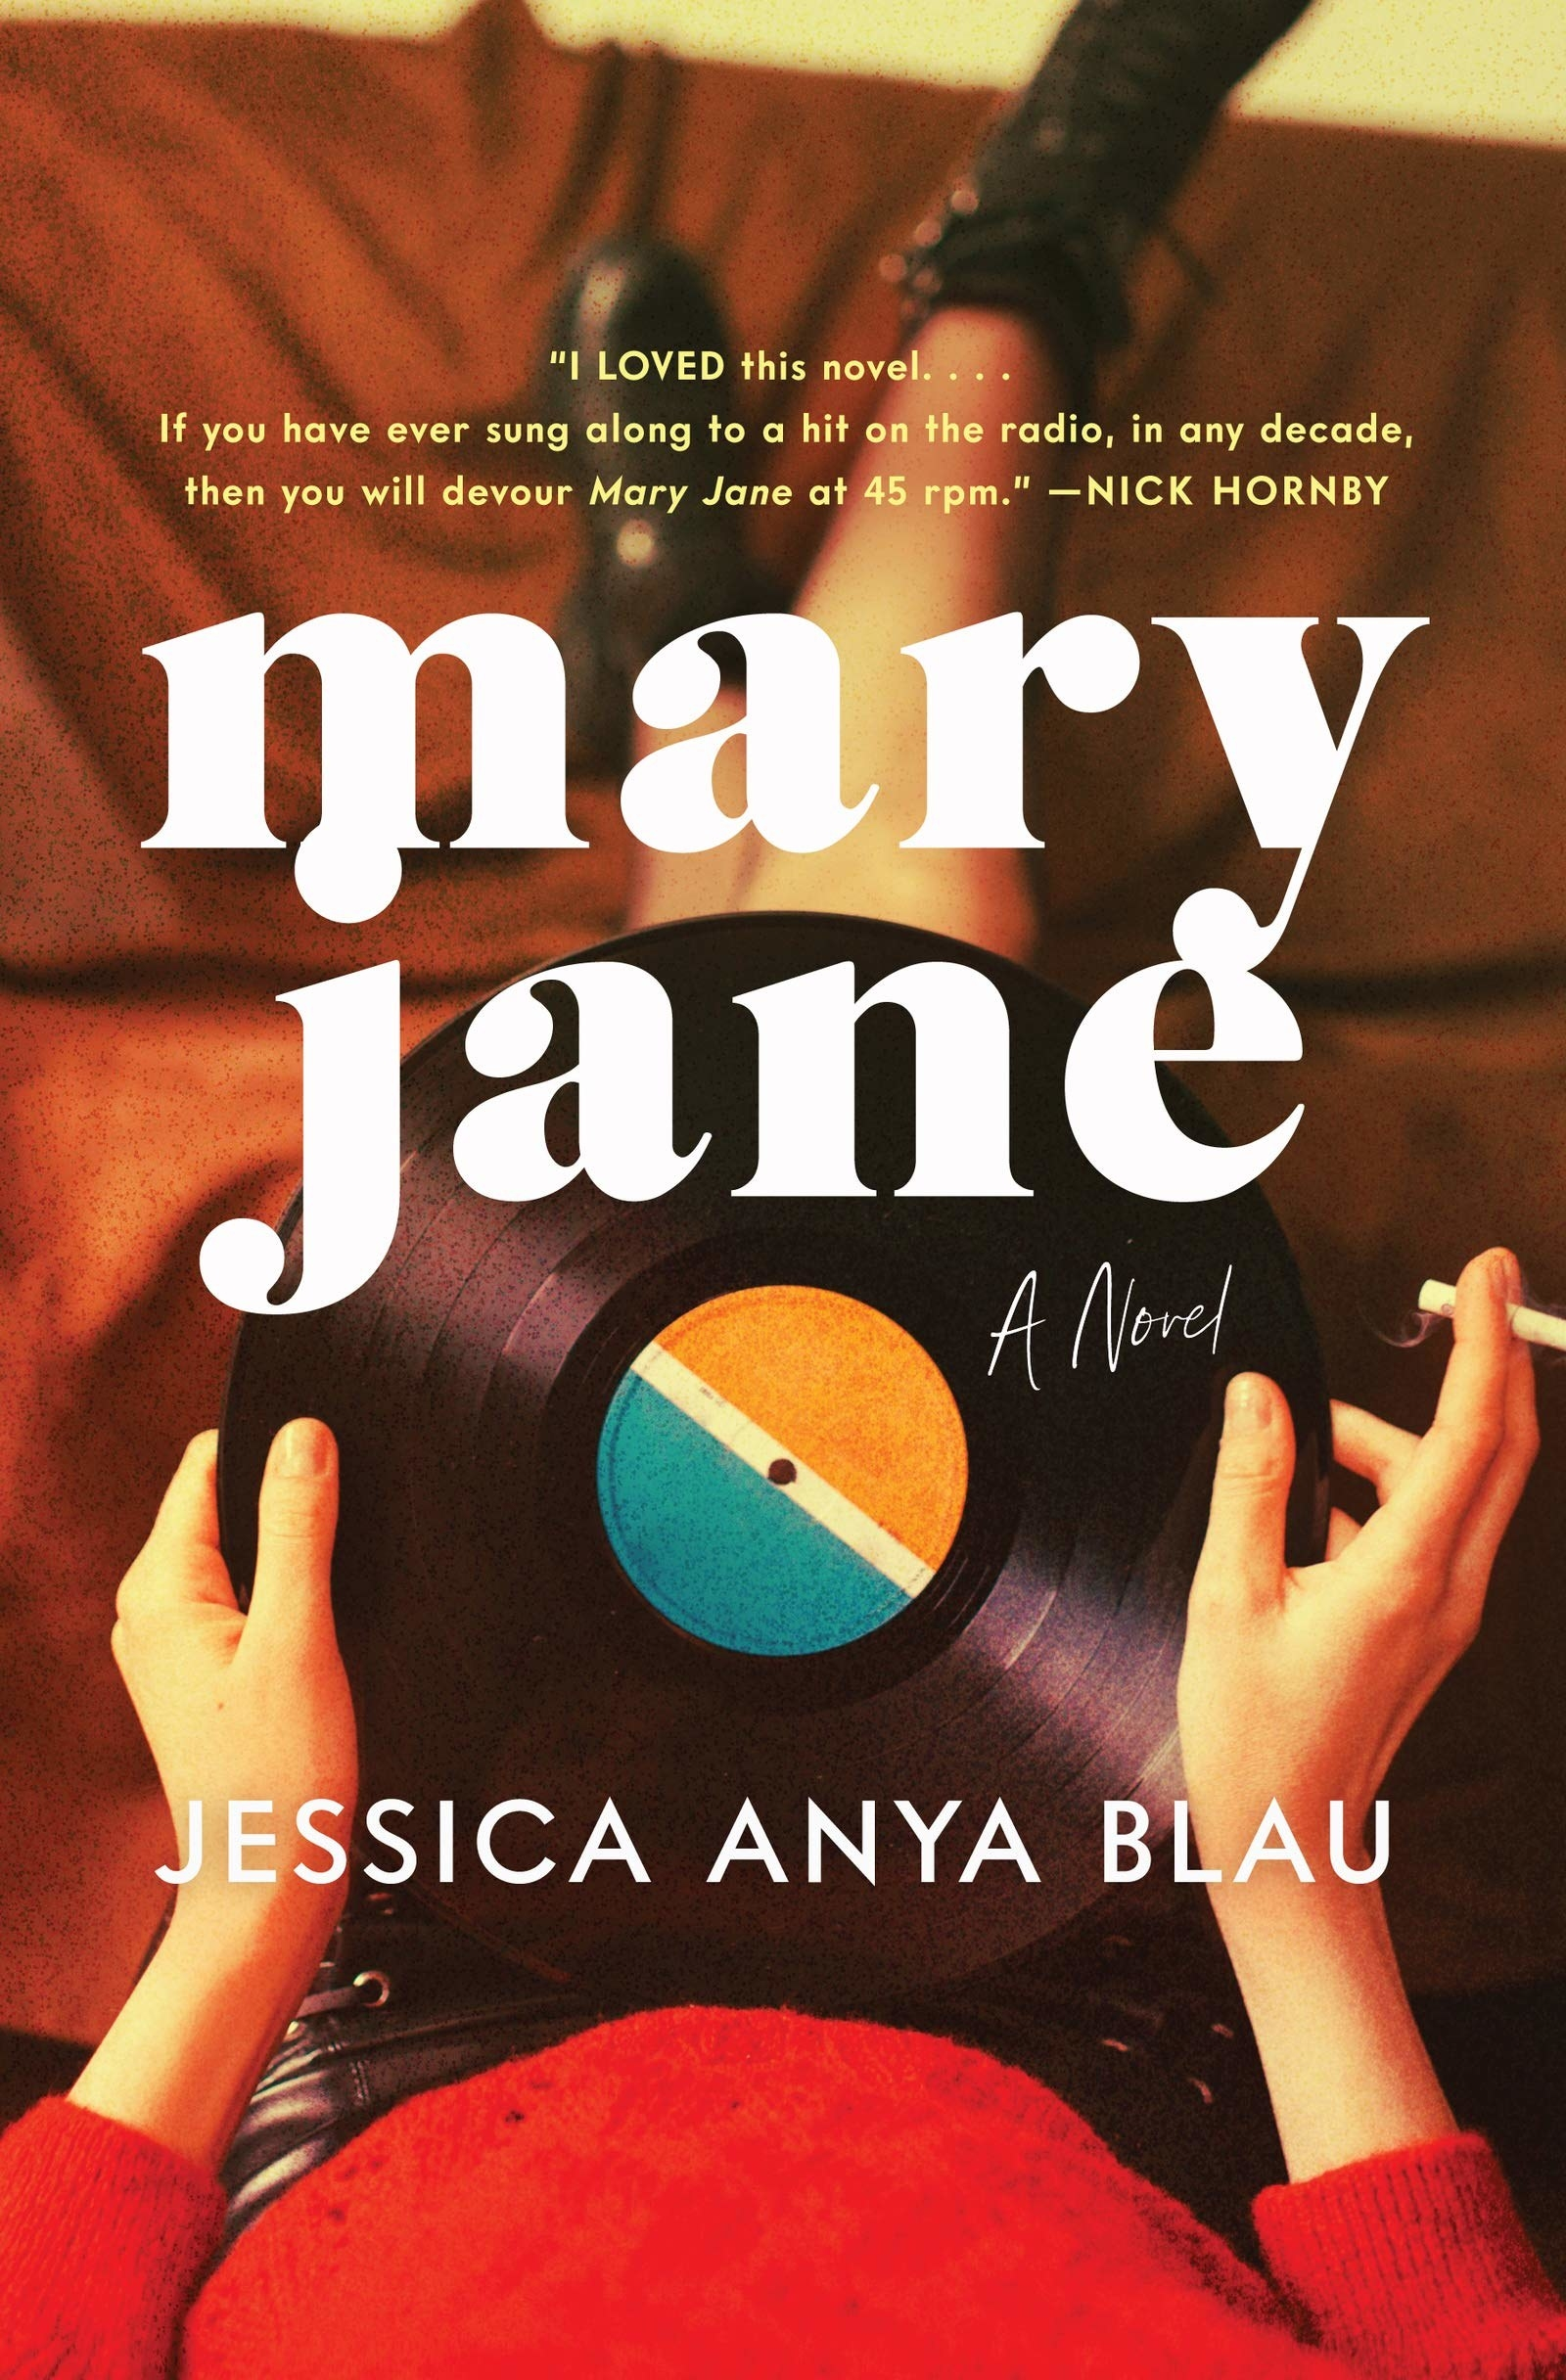 the book cover with person holding a vinyl record